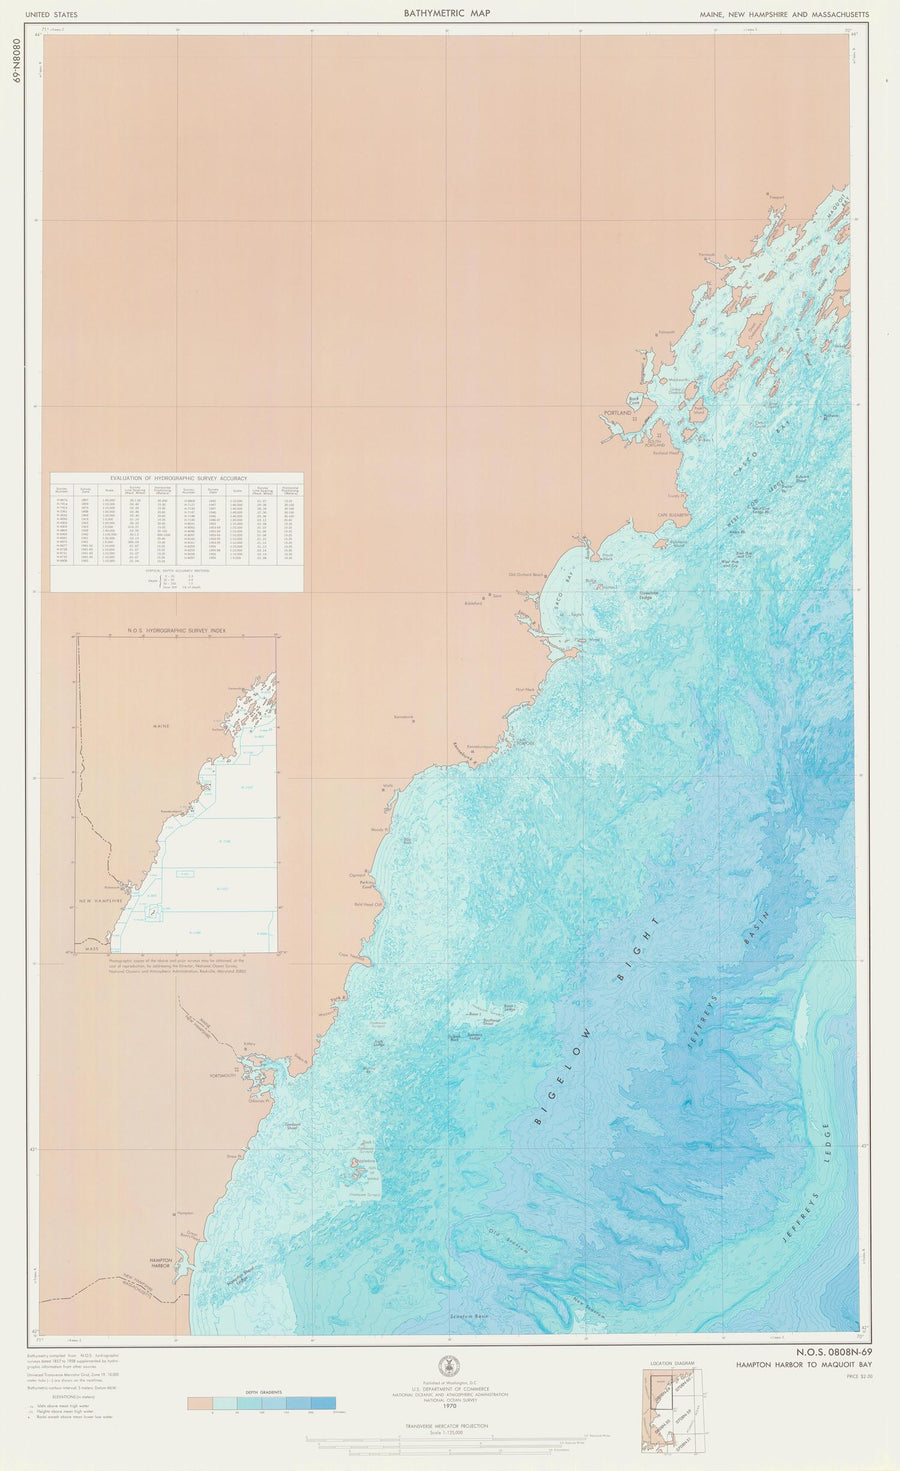 Hampton Harbor to Casco Bay Bathymetric Fishing Map - 1970